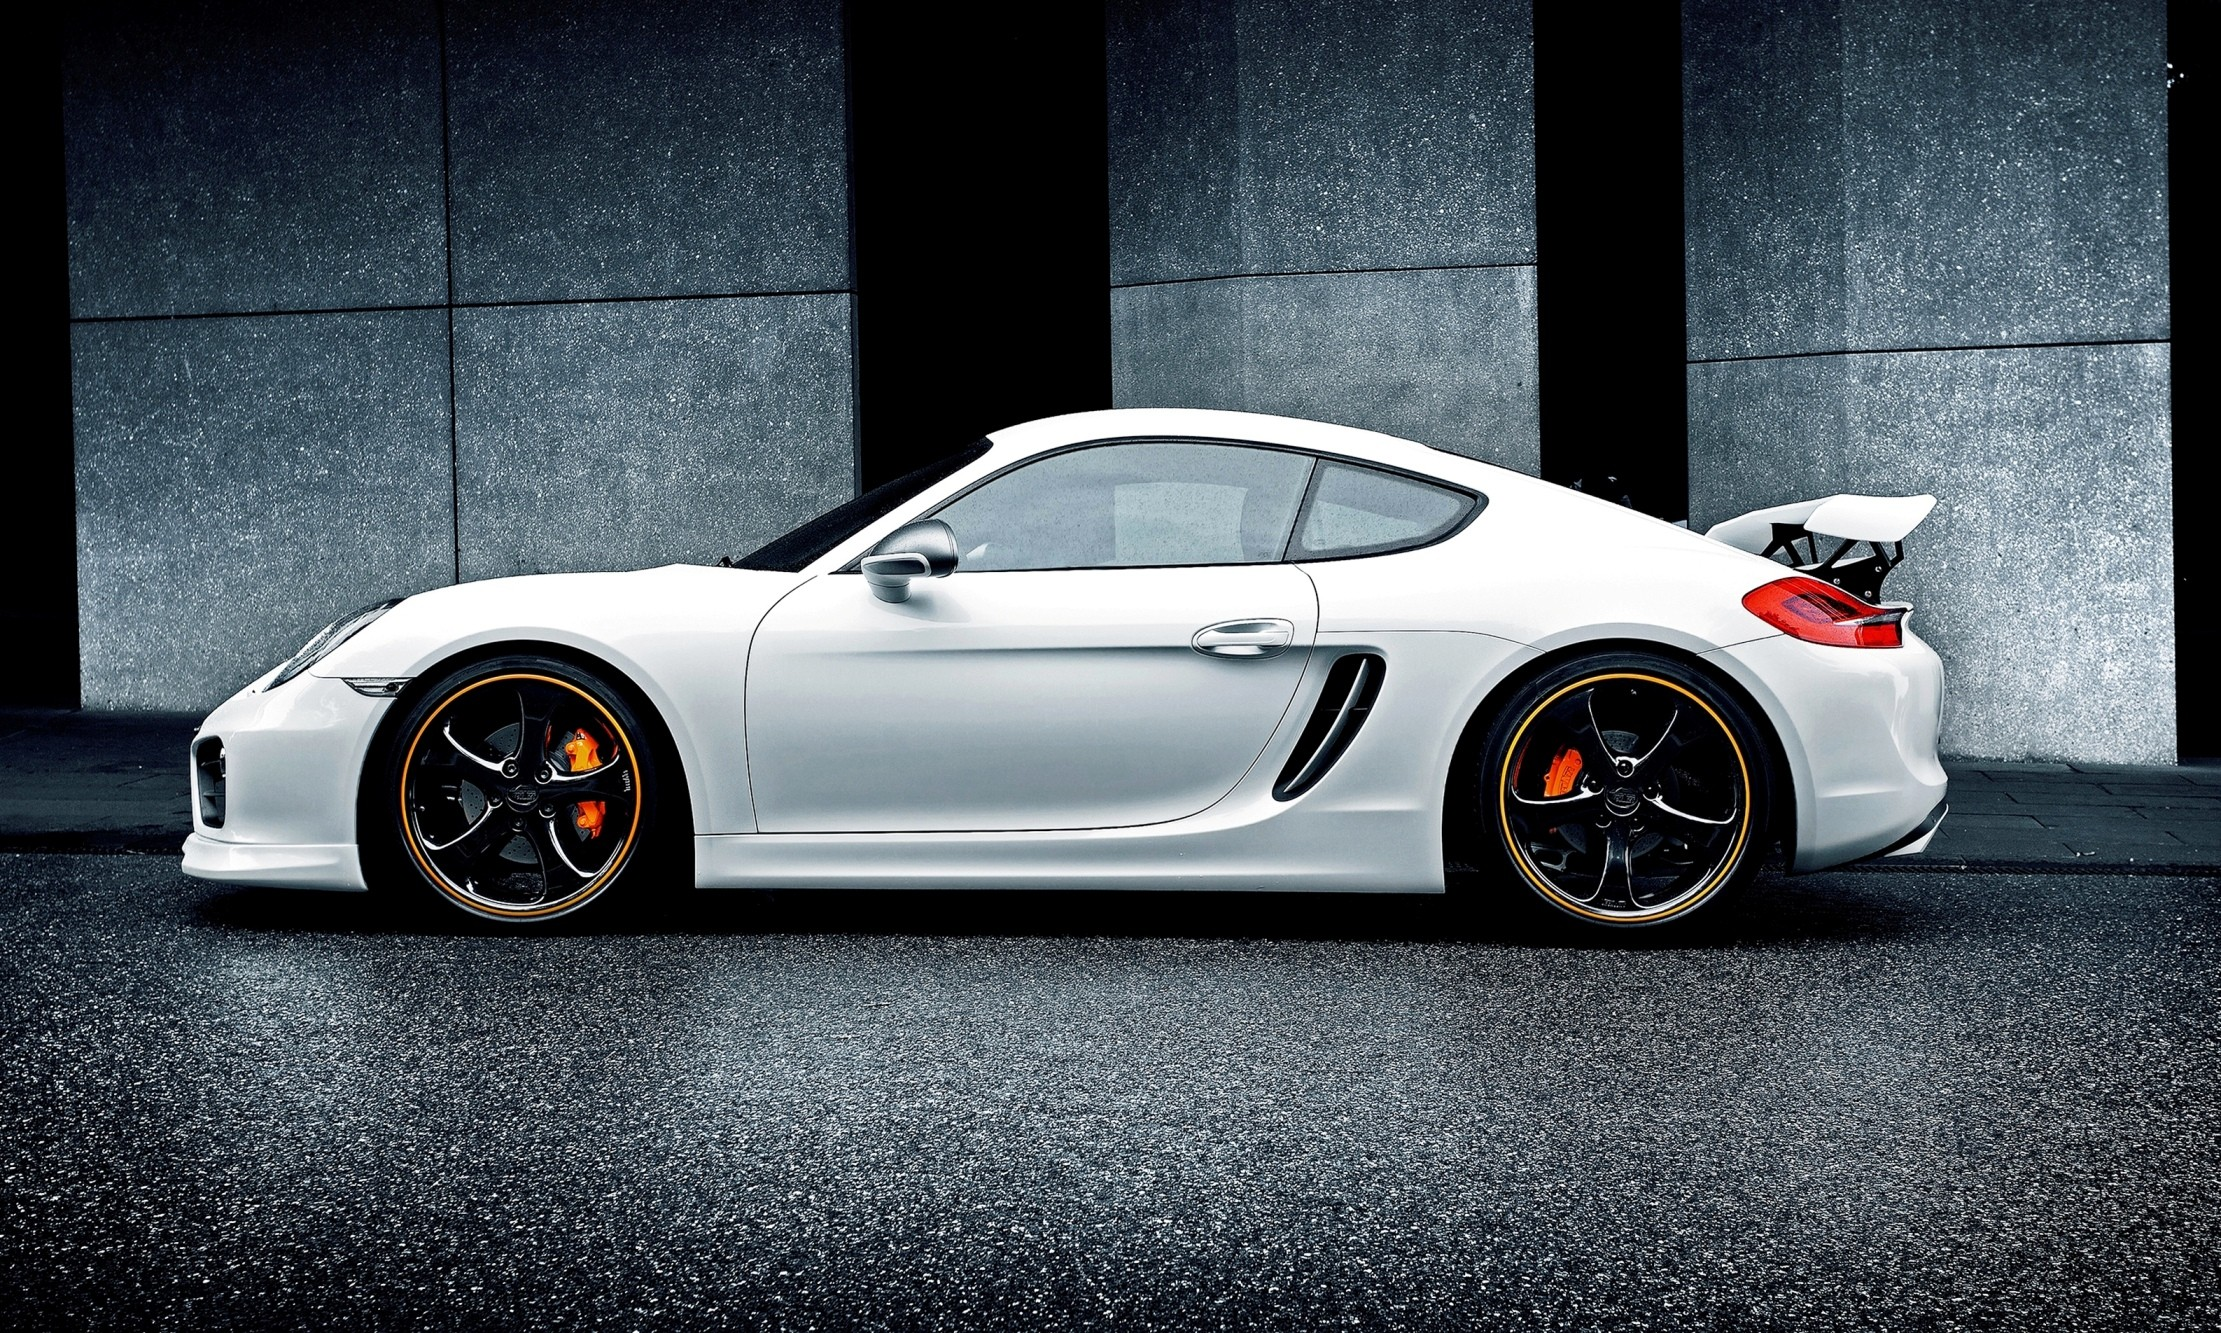 TECHART For Boxster And Cayman Deliver A Huge Shot Of